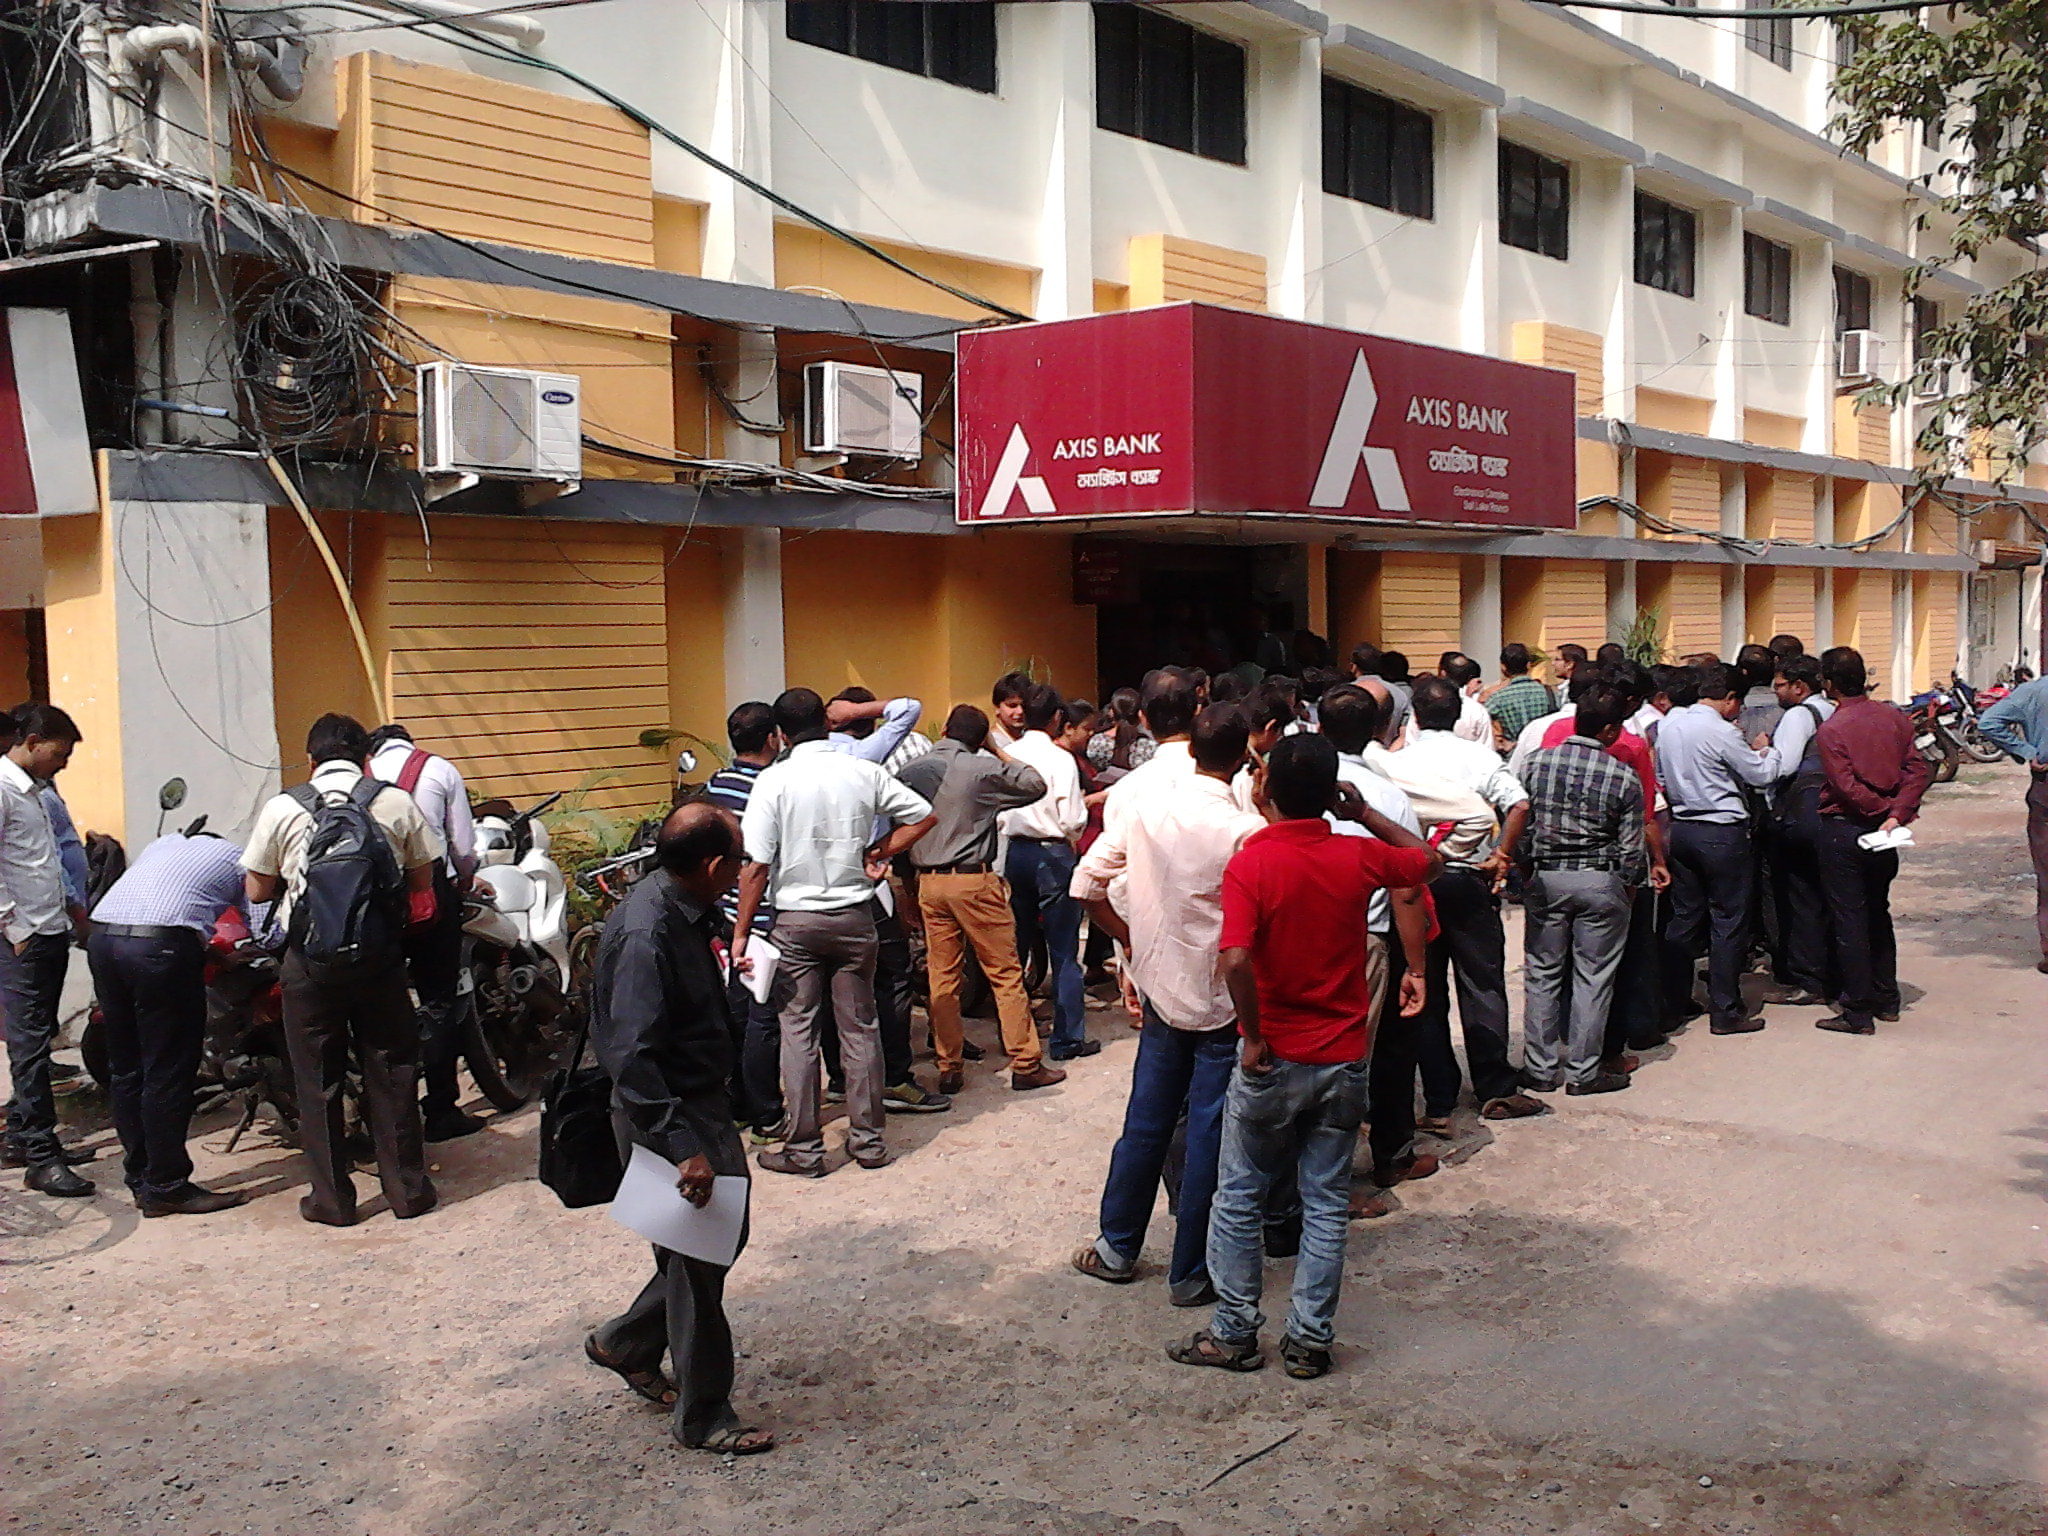 People queueing outside a private bank in Kolkata